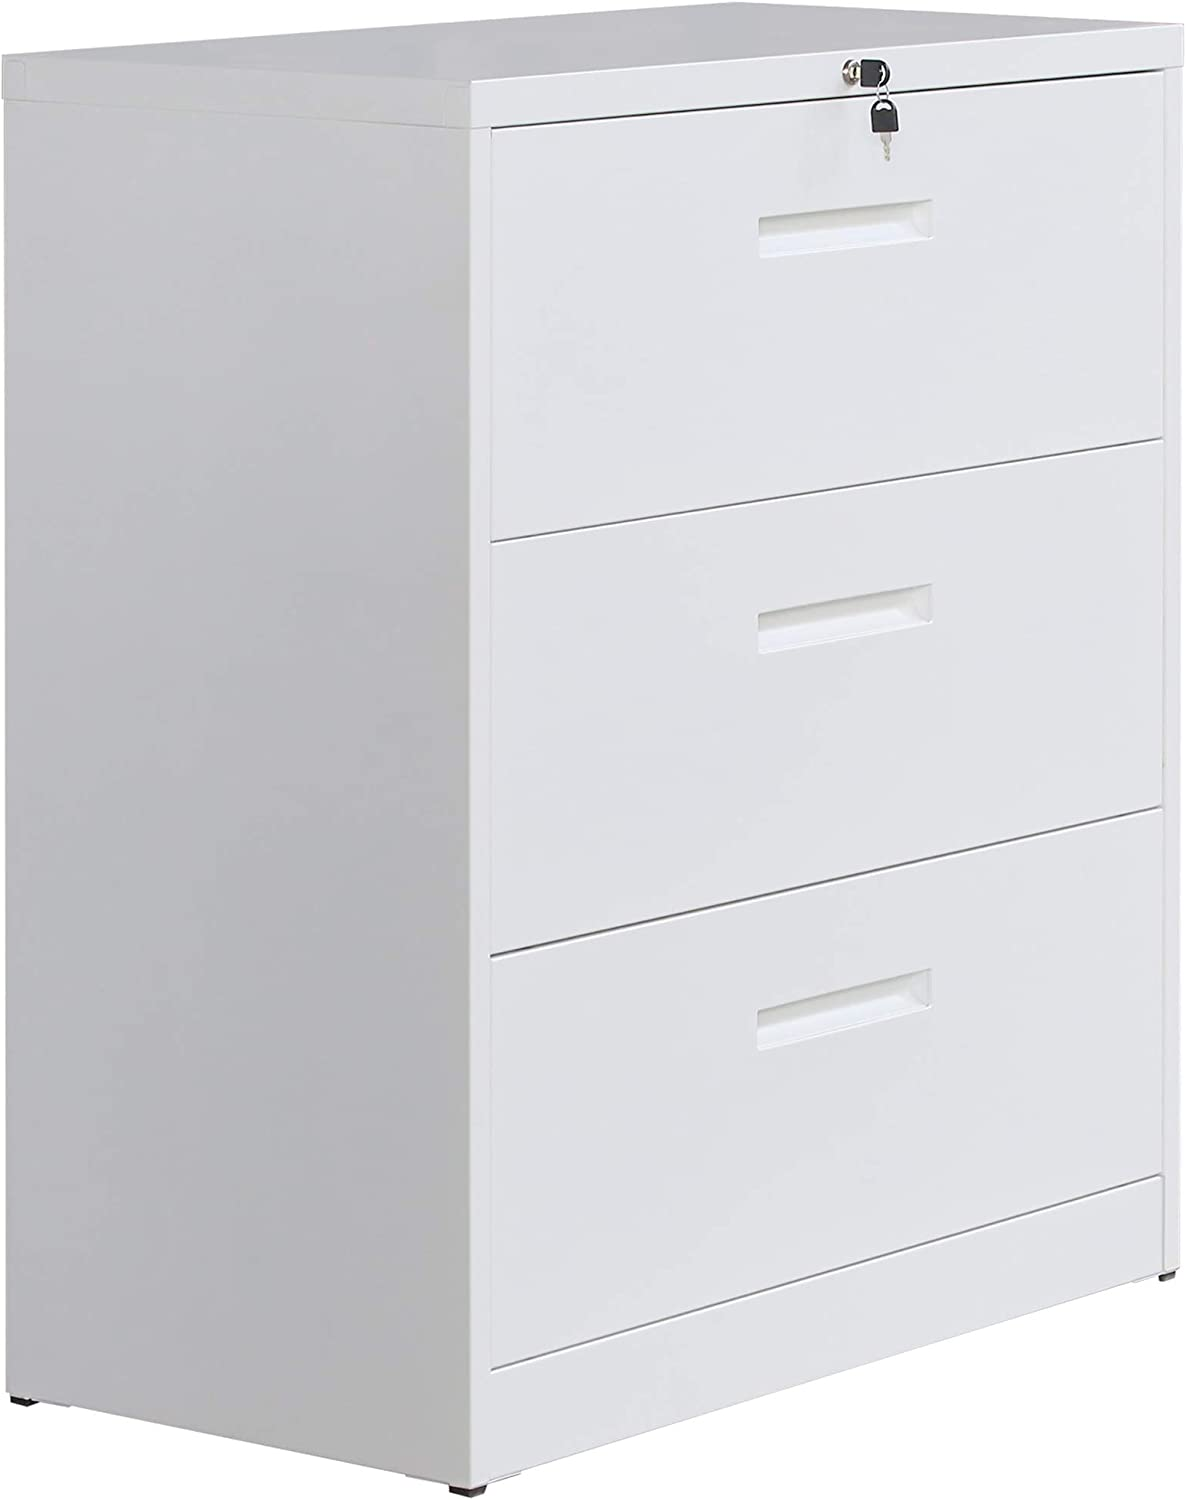 Heavy Duty Lateral File Cabinet with 3 Drawers 1 Lock Metal Cabinet for Keeping Office Supplies Assemble Required (White)